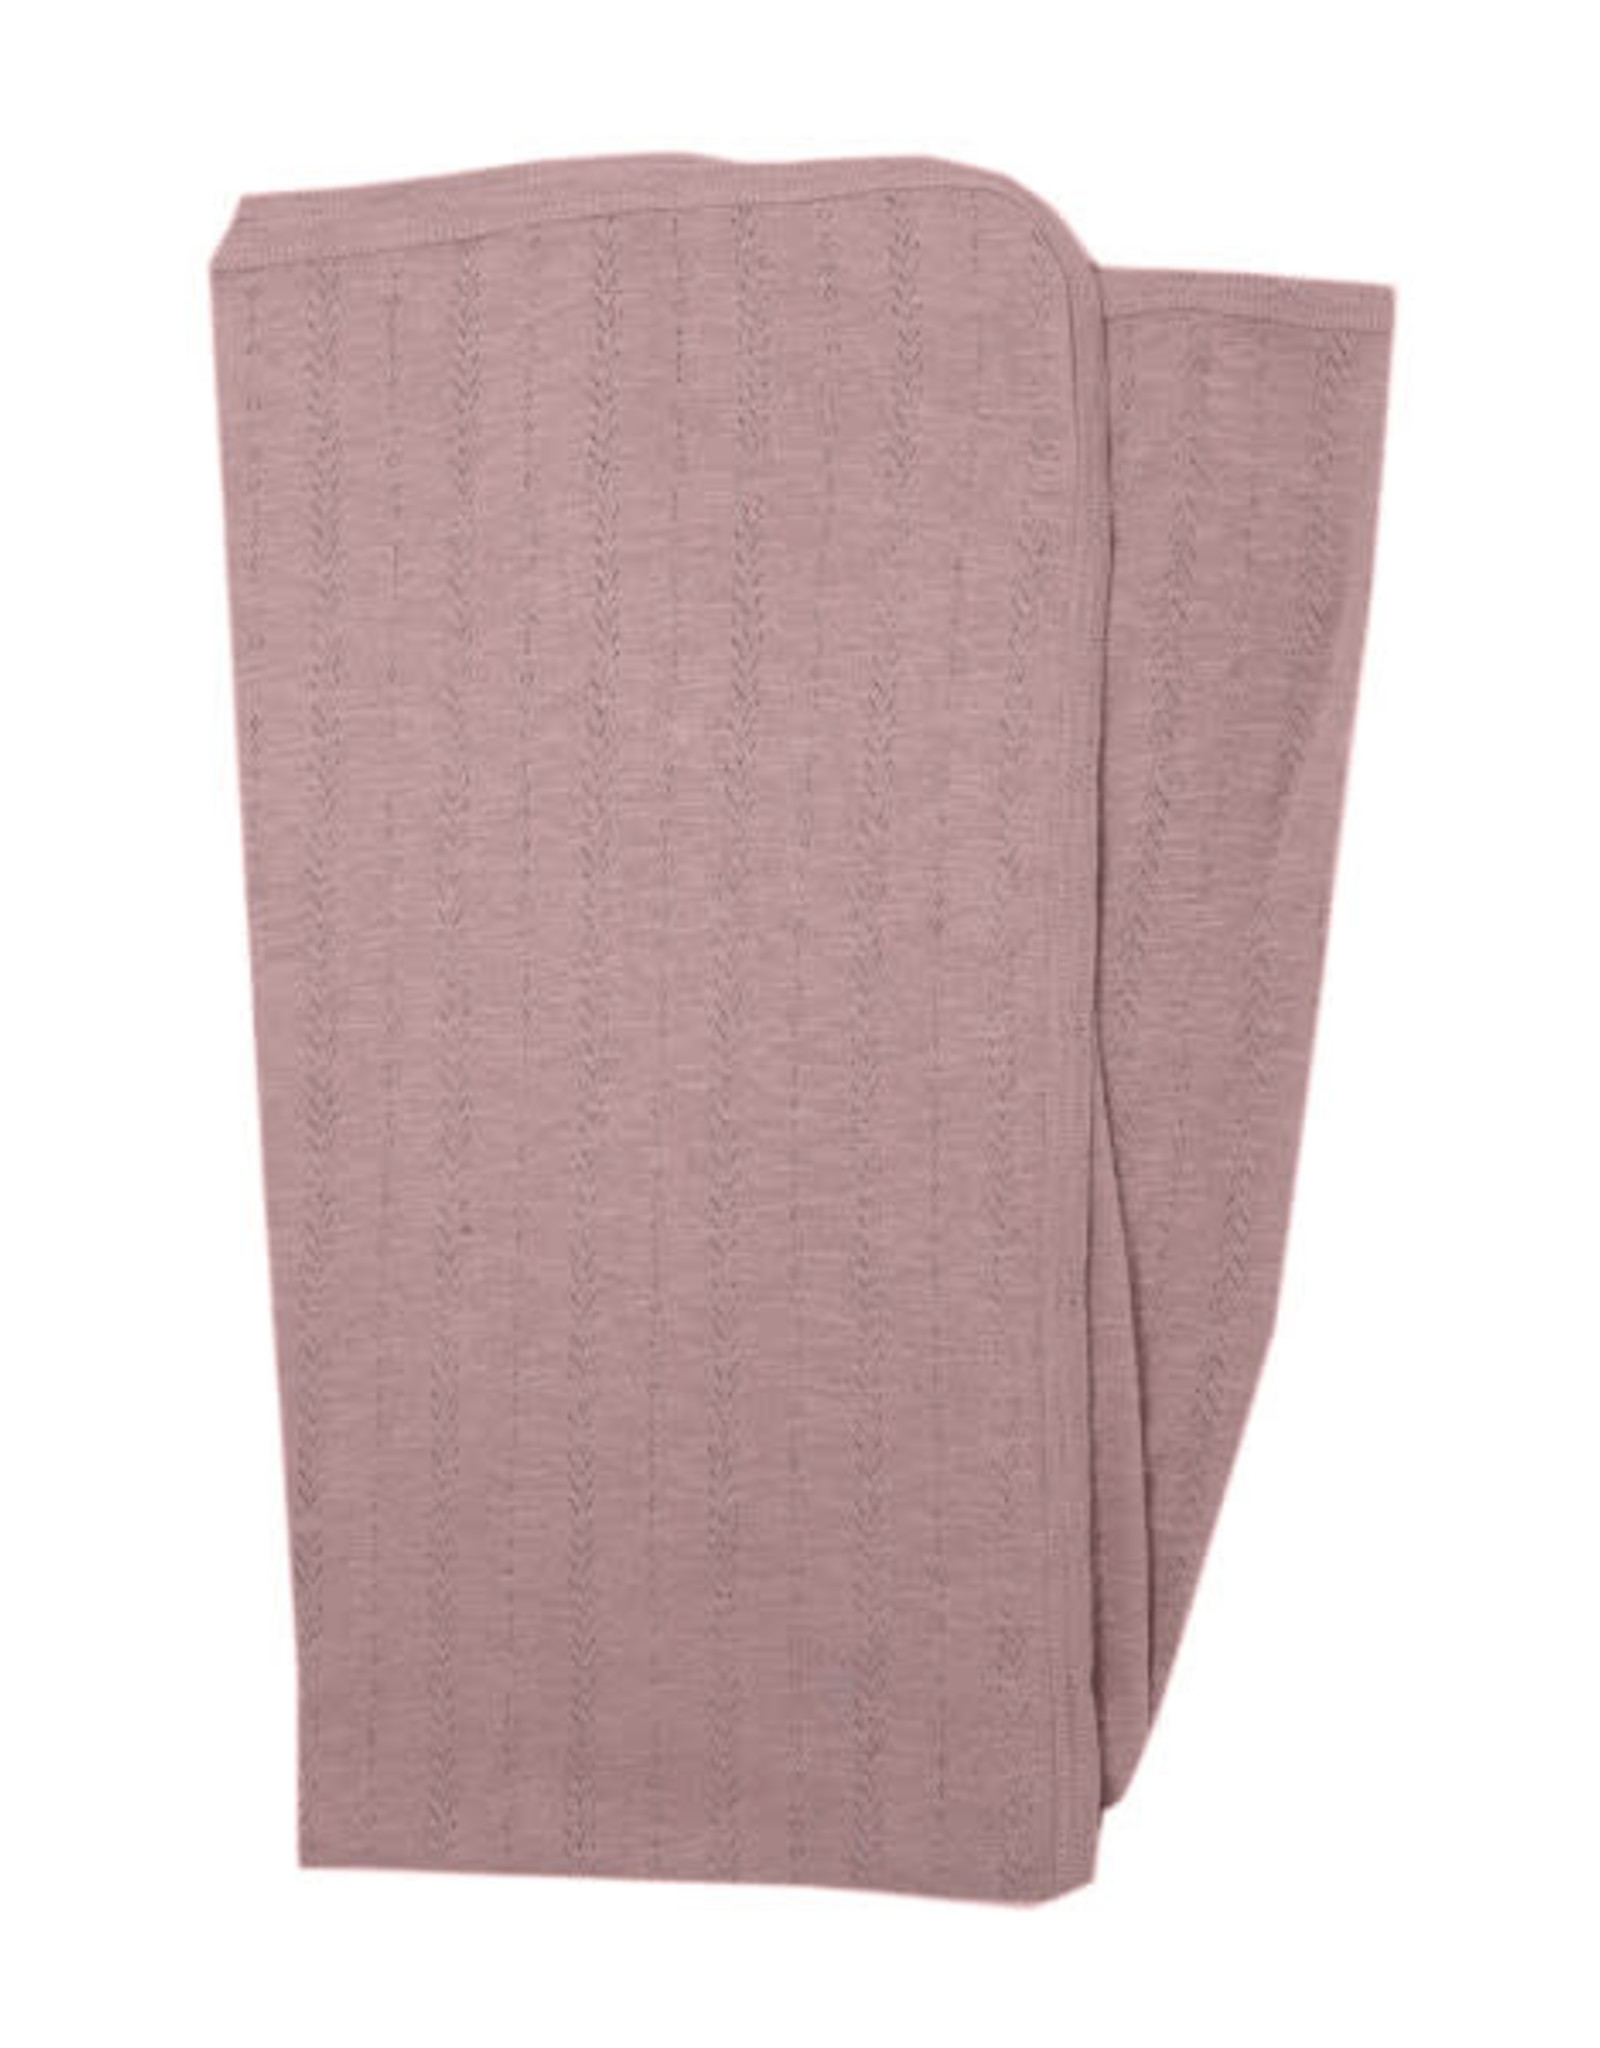 L'oved Baby Pointelle Swaddle Blanket Thistle